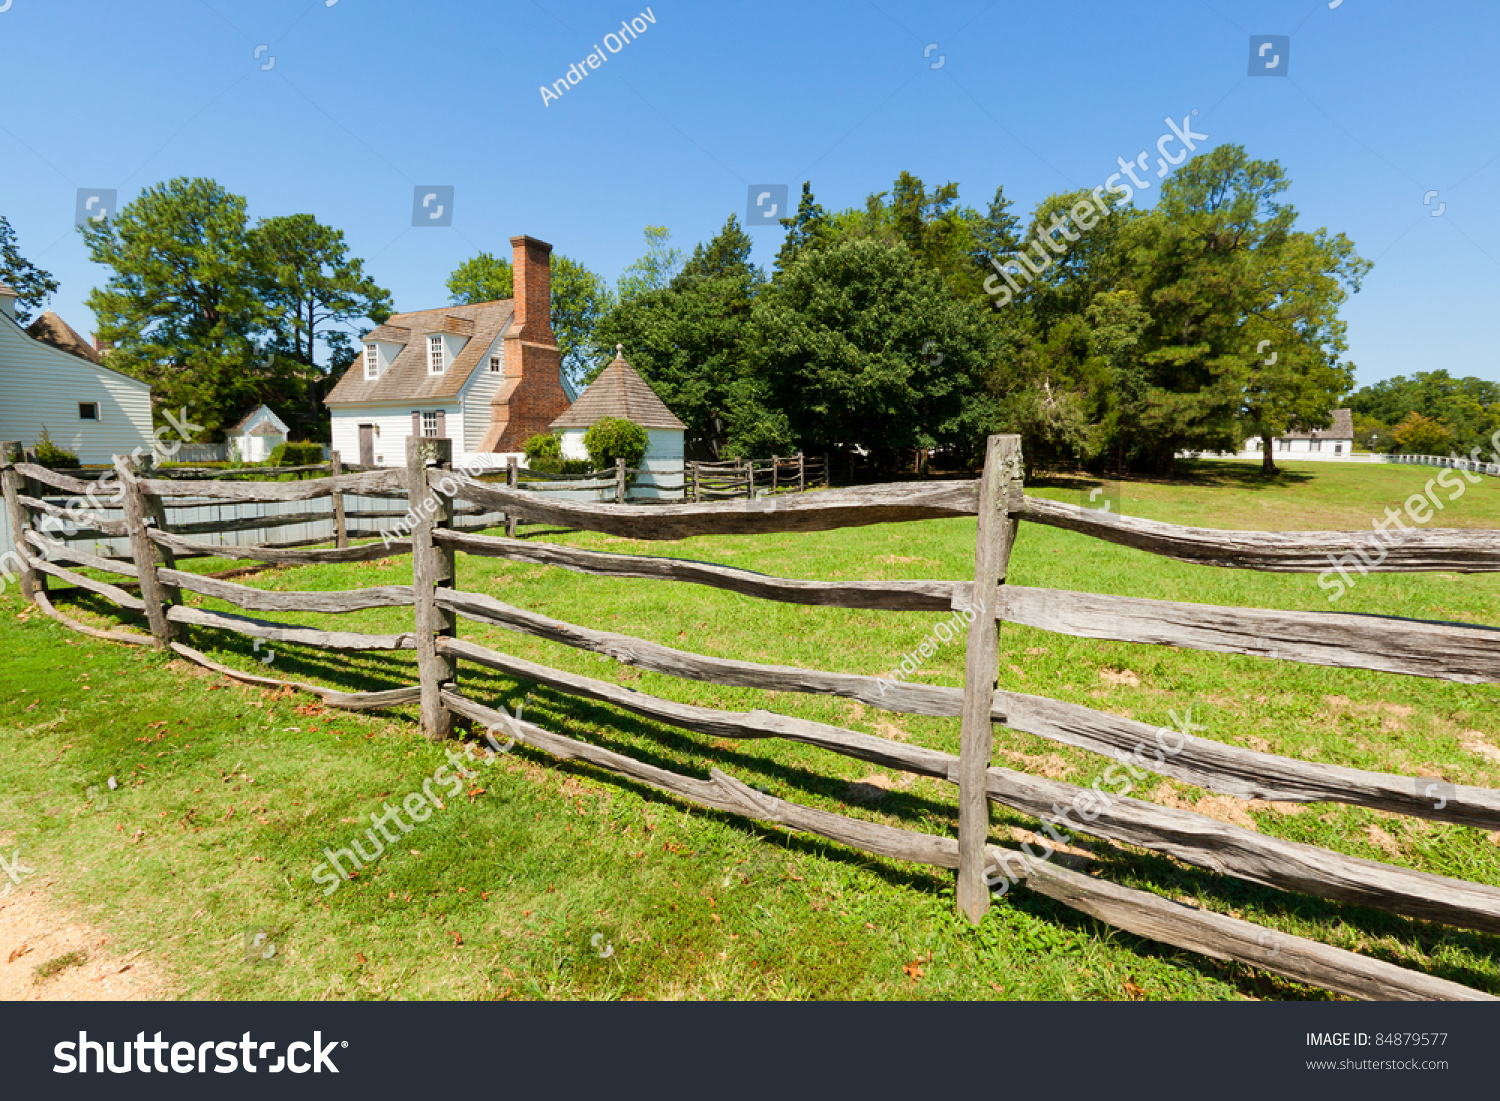 View Of The Ancient Wooden Fence On The Farm. Stock Photo